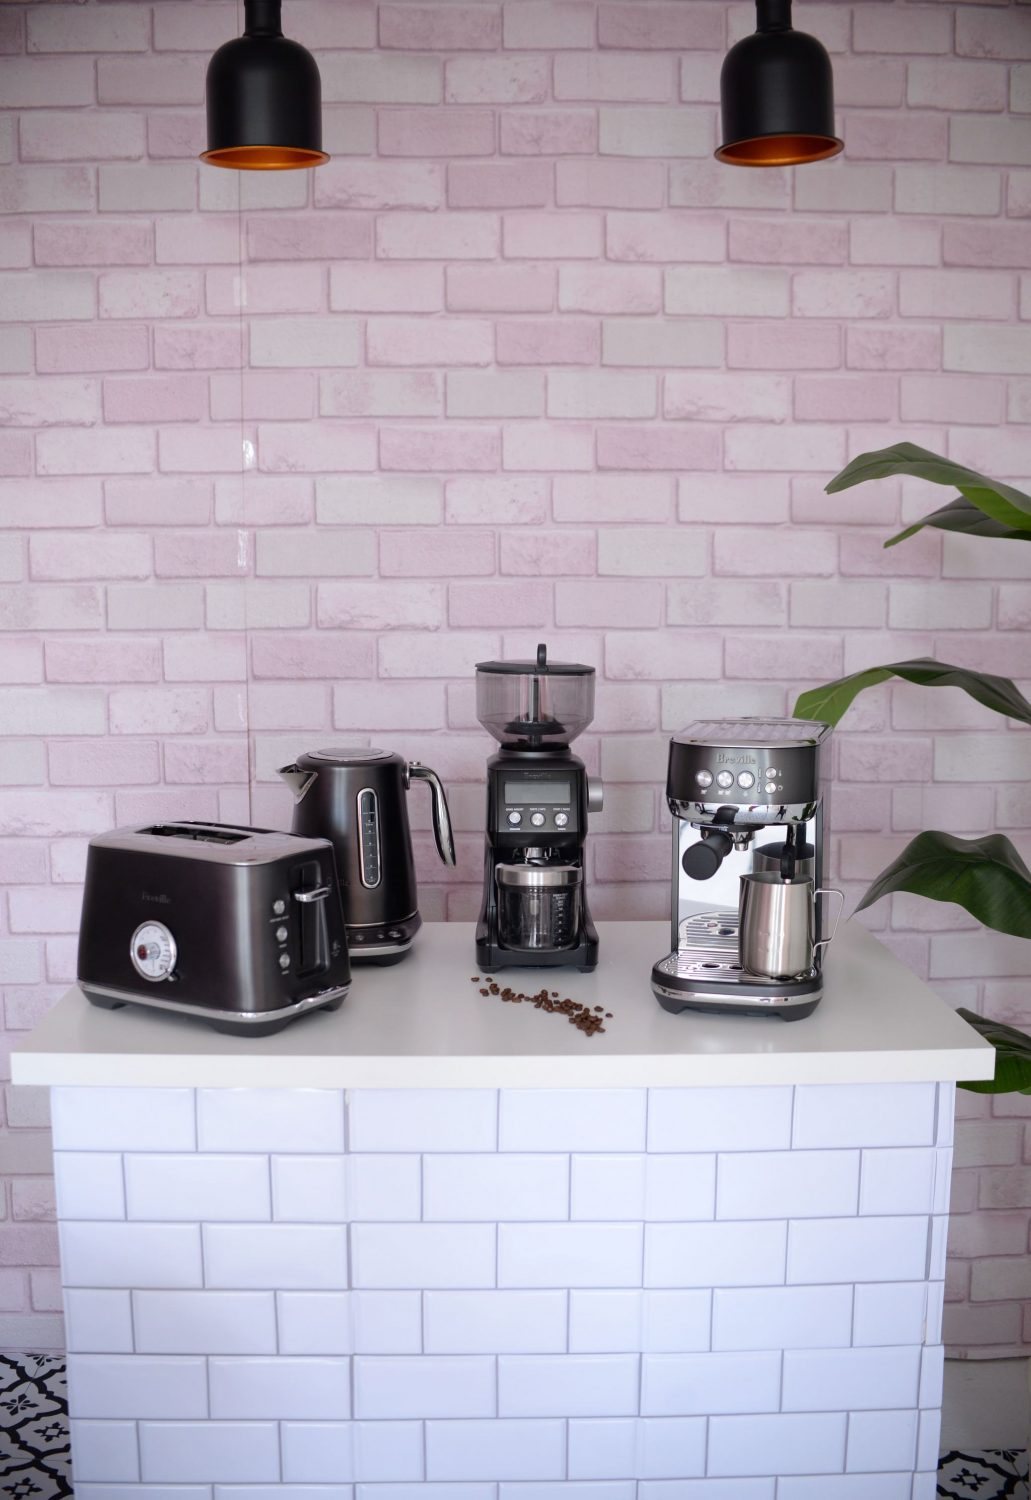 Breville Black Stainless Steel Luxe Collection